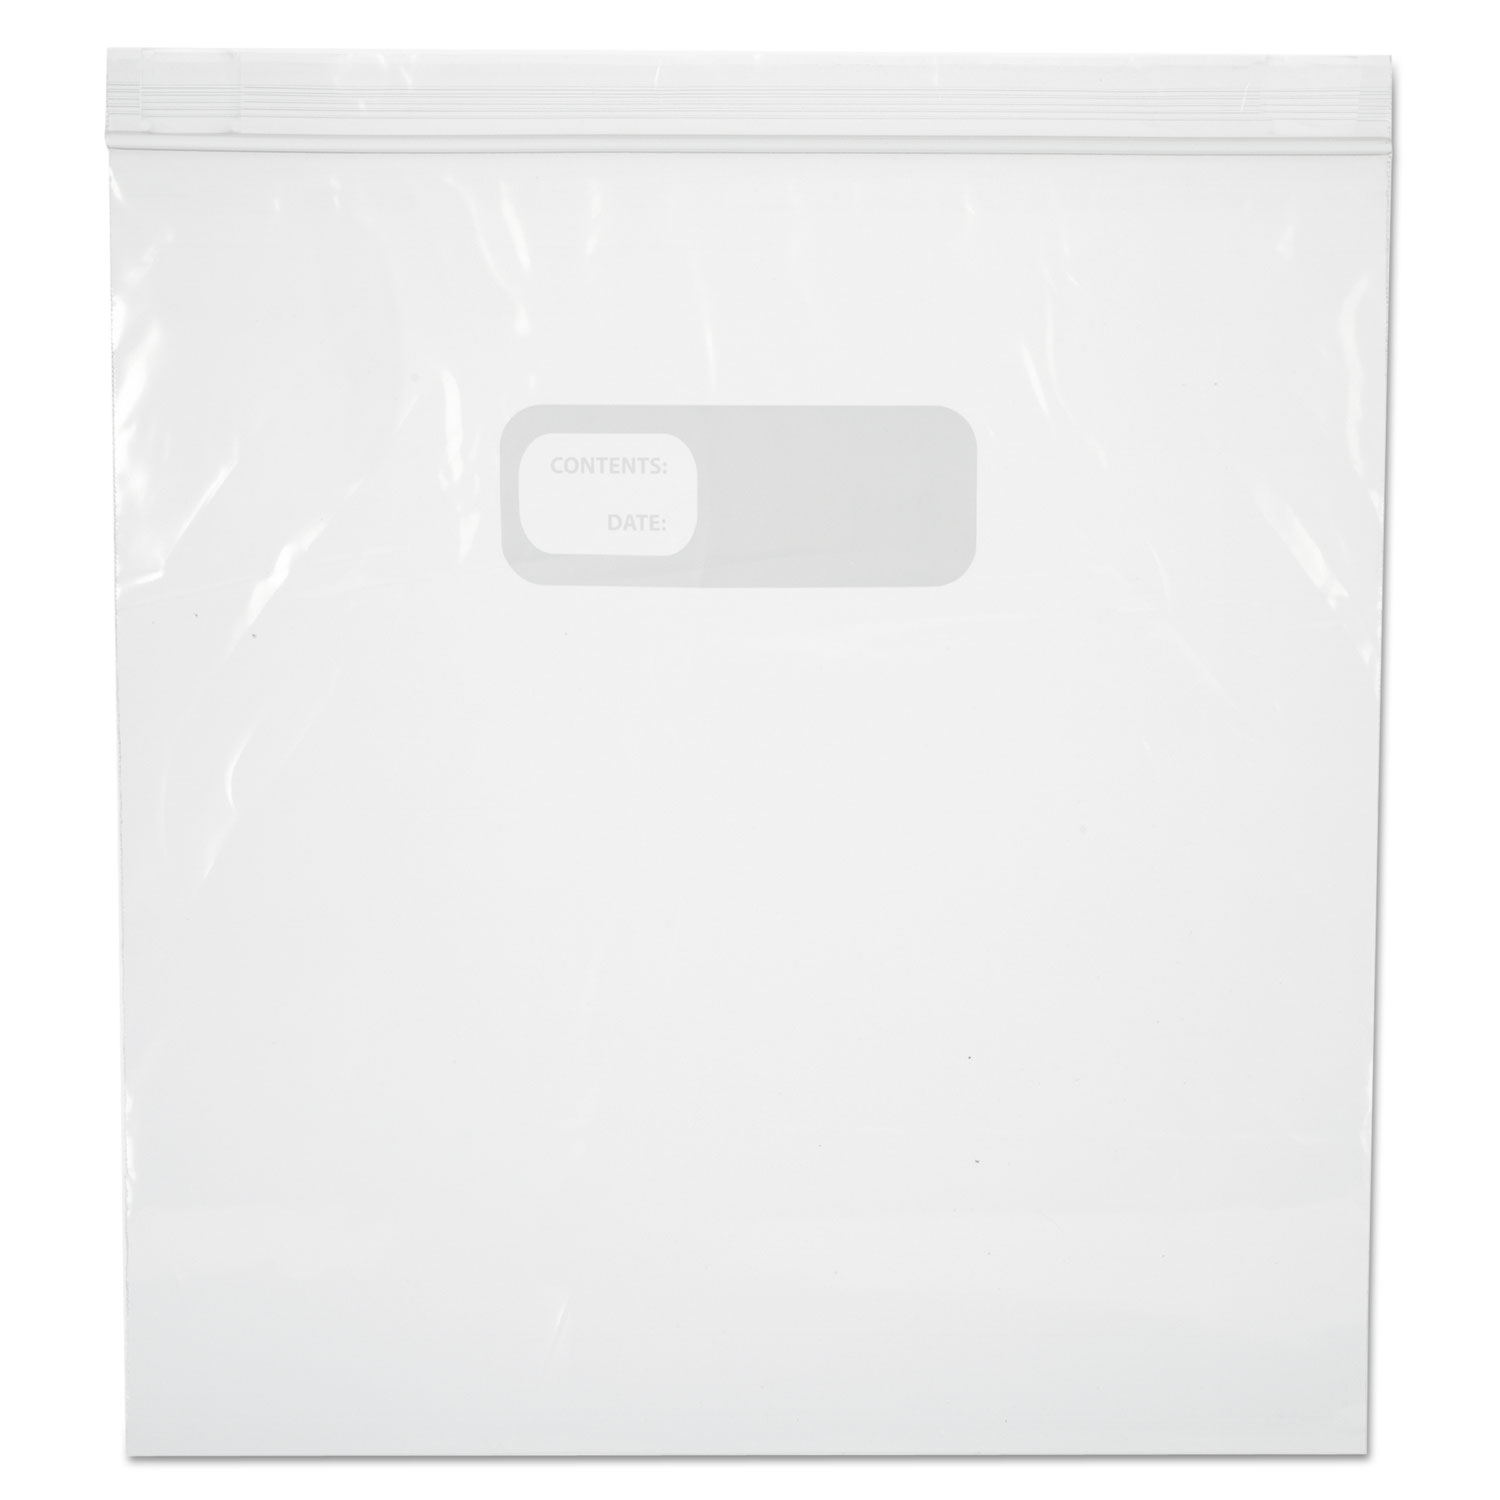 """Reclosable Food Storage Bags, 1 gal, 2.7 mil, 10.5"""" x 11"""", Clear, 250/Box"""